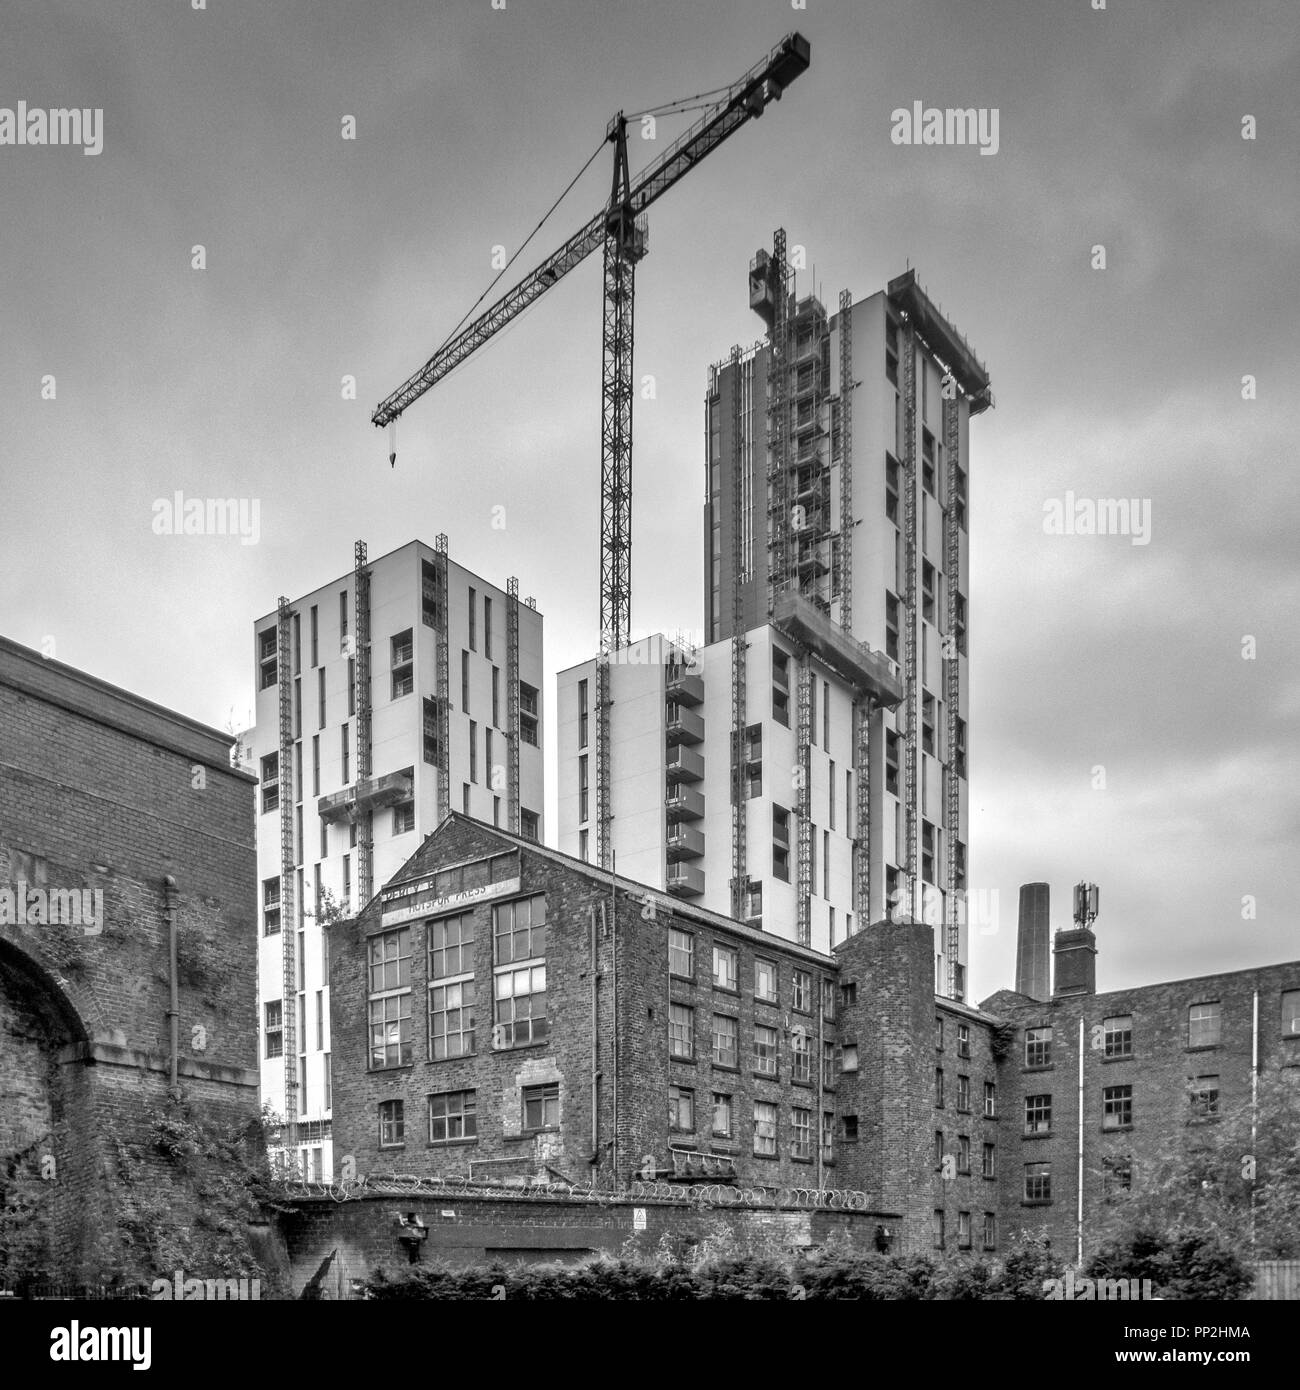 Modern construction and historic architecture together, Manchester, UK - Stock Image